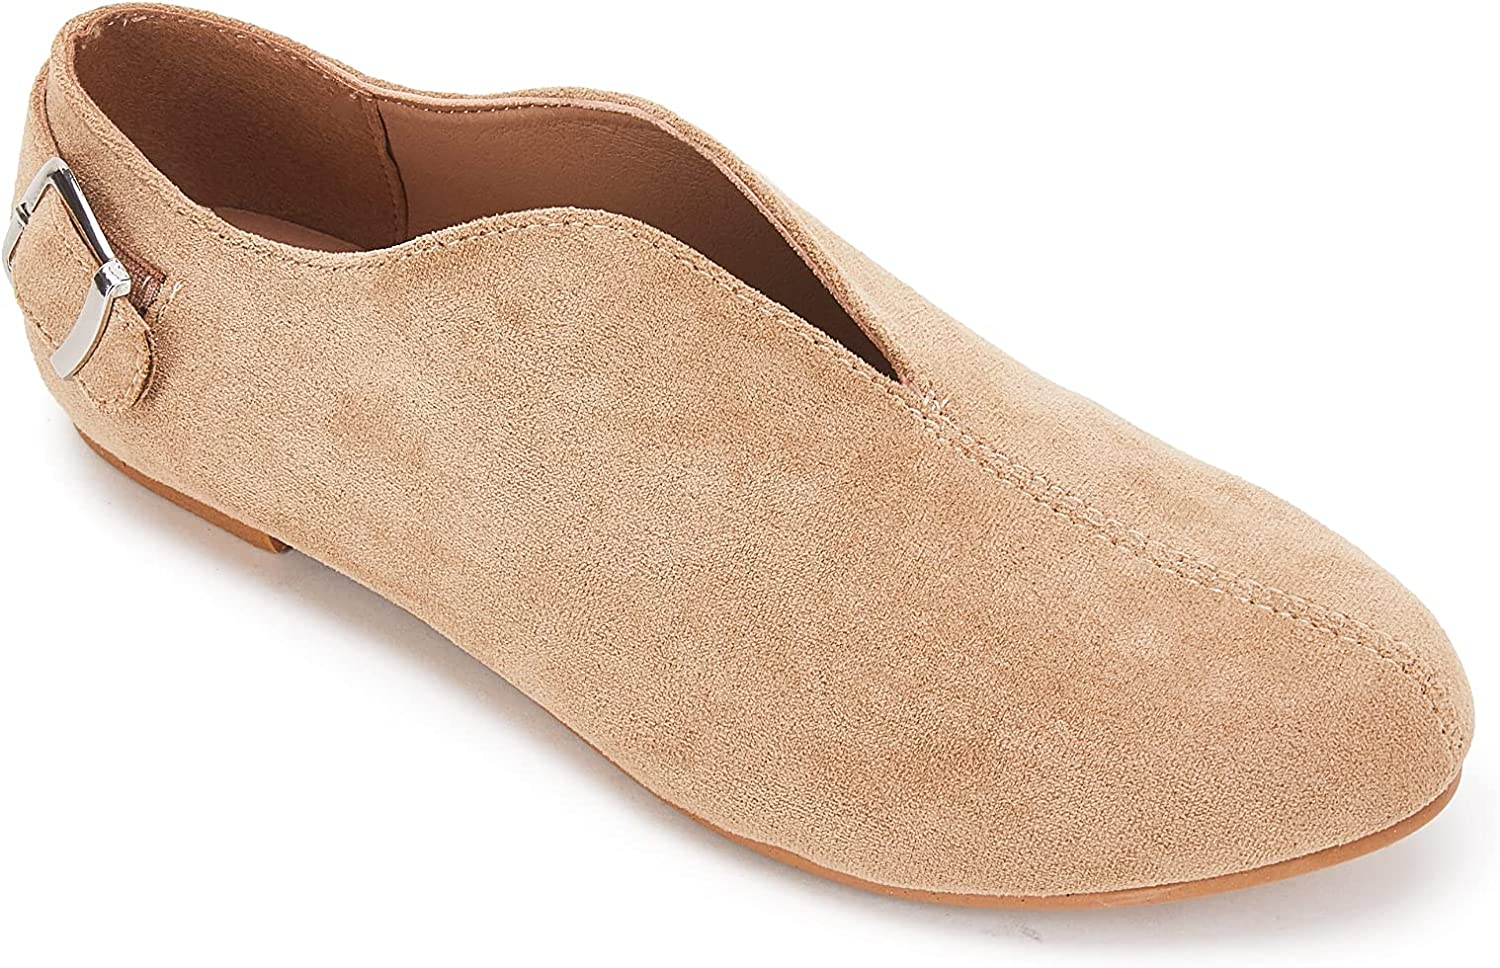 Beotyshow OFFer Pointed Toe Year-end annual account Flats for Women Suede Comfy Solid Classic